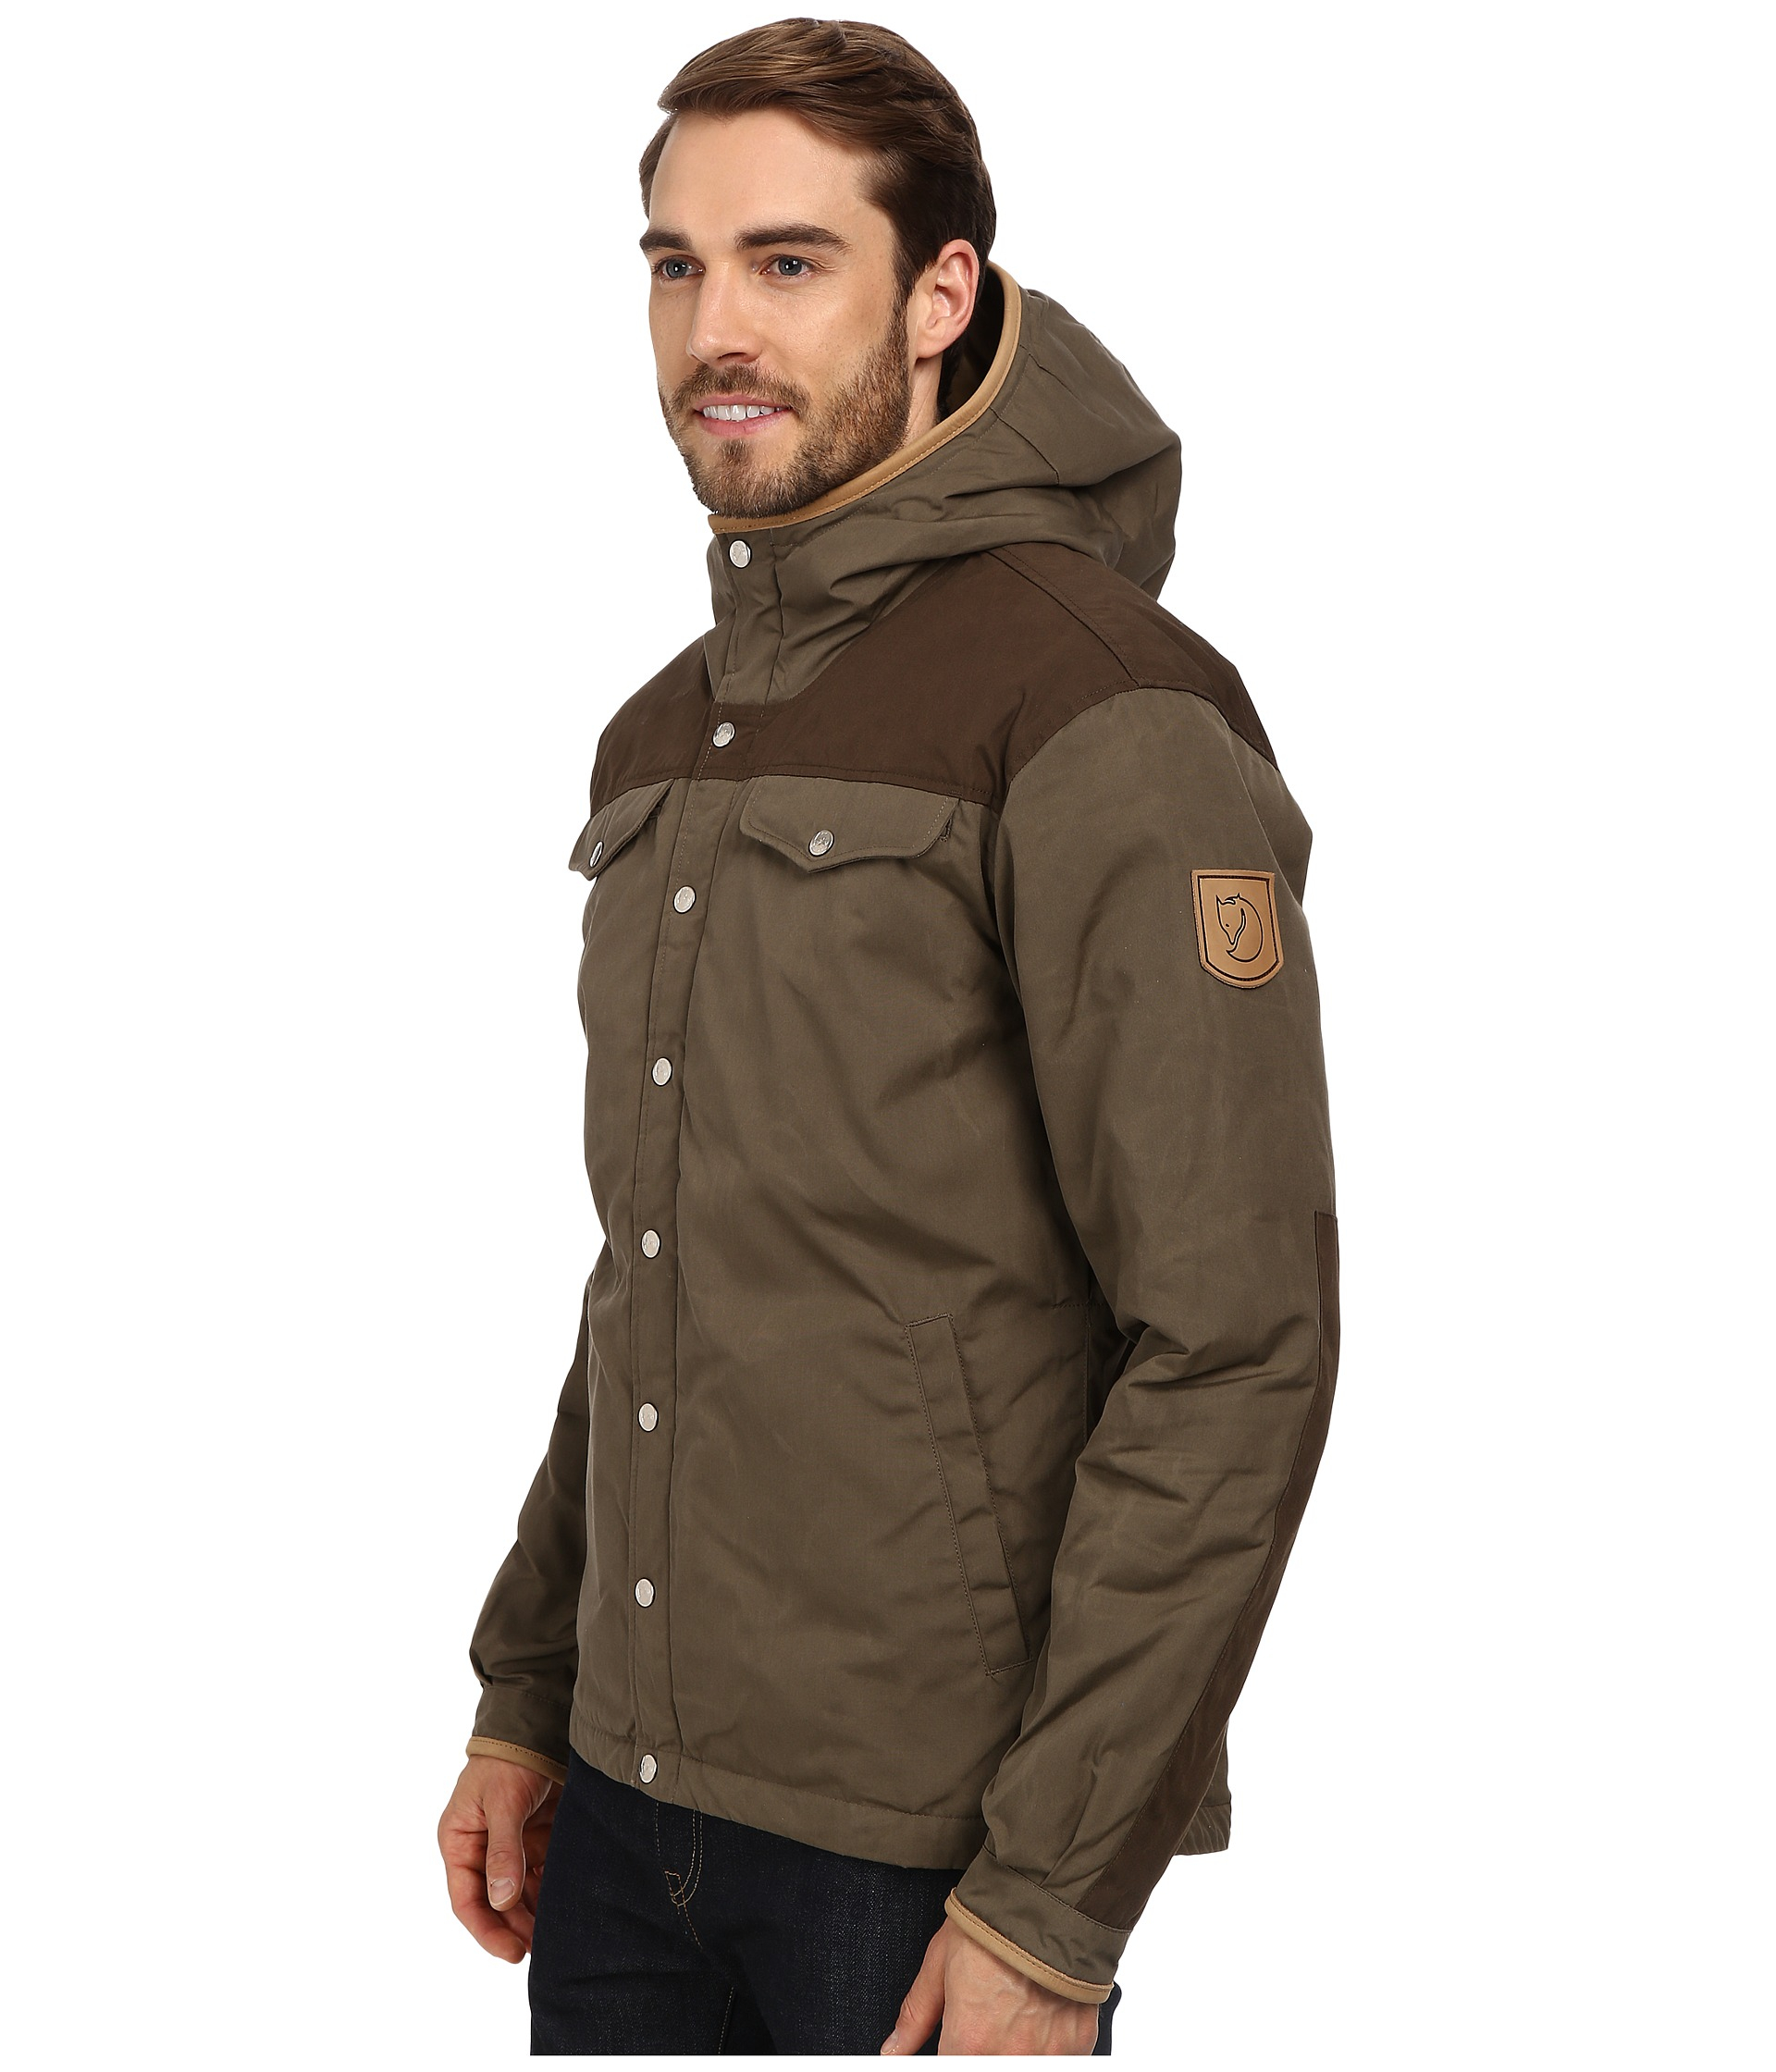 e3d8fc0bf2e3 Lyst - Fjallraven Greenland No. 1 Down Jacket in Green for Men